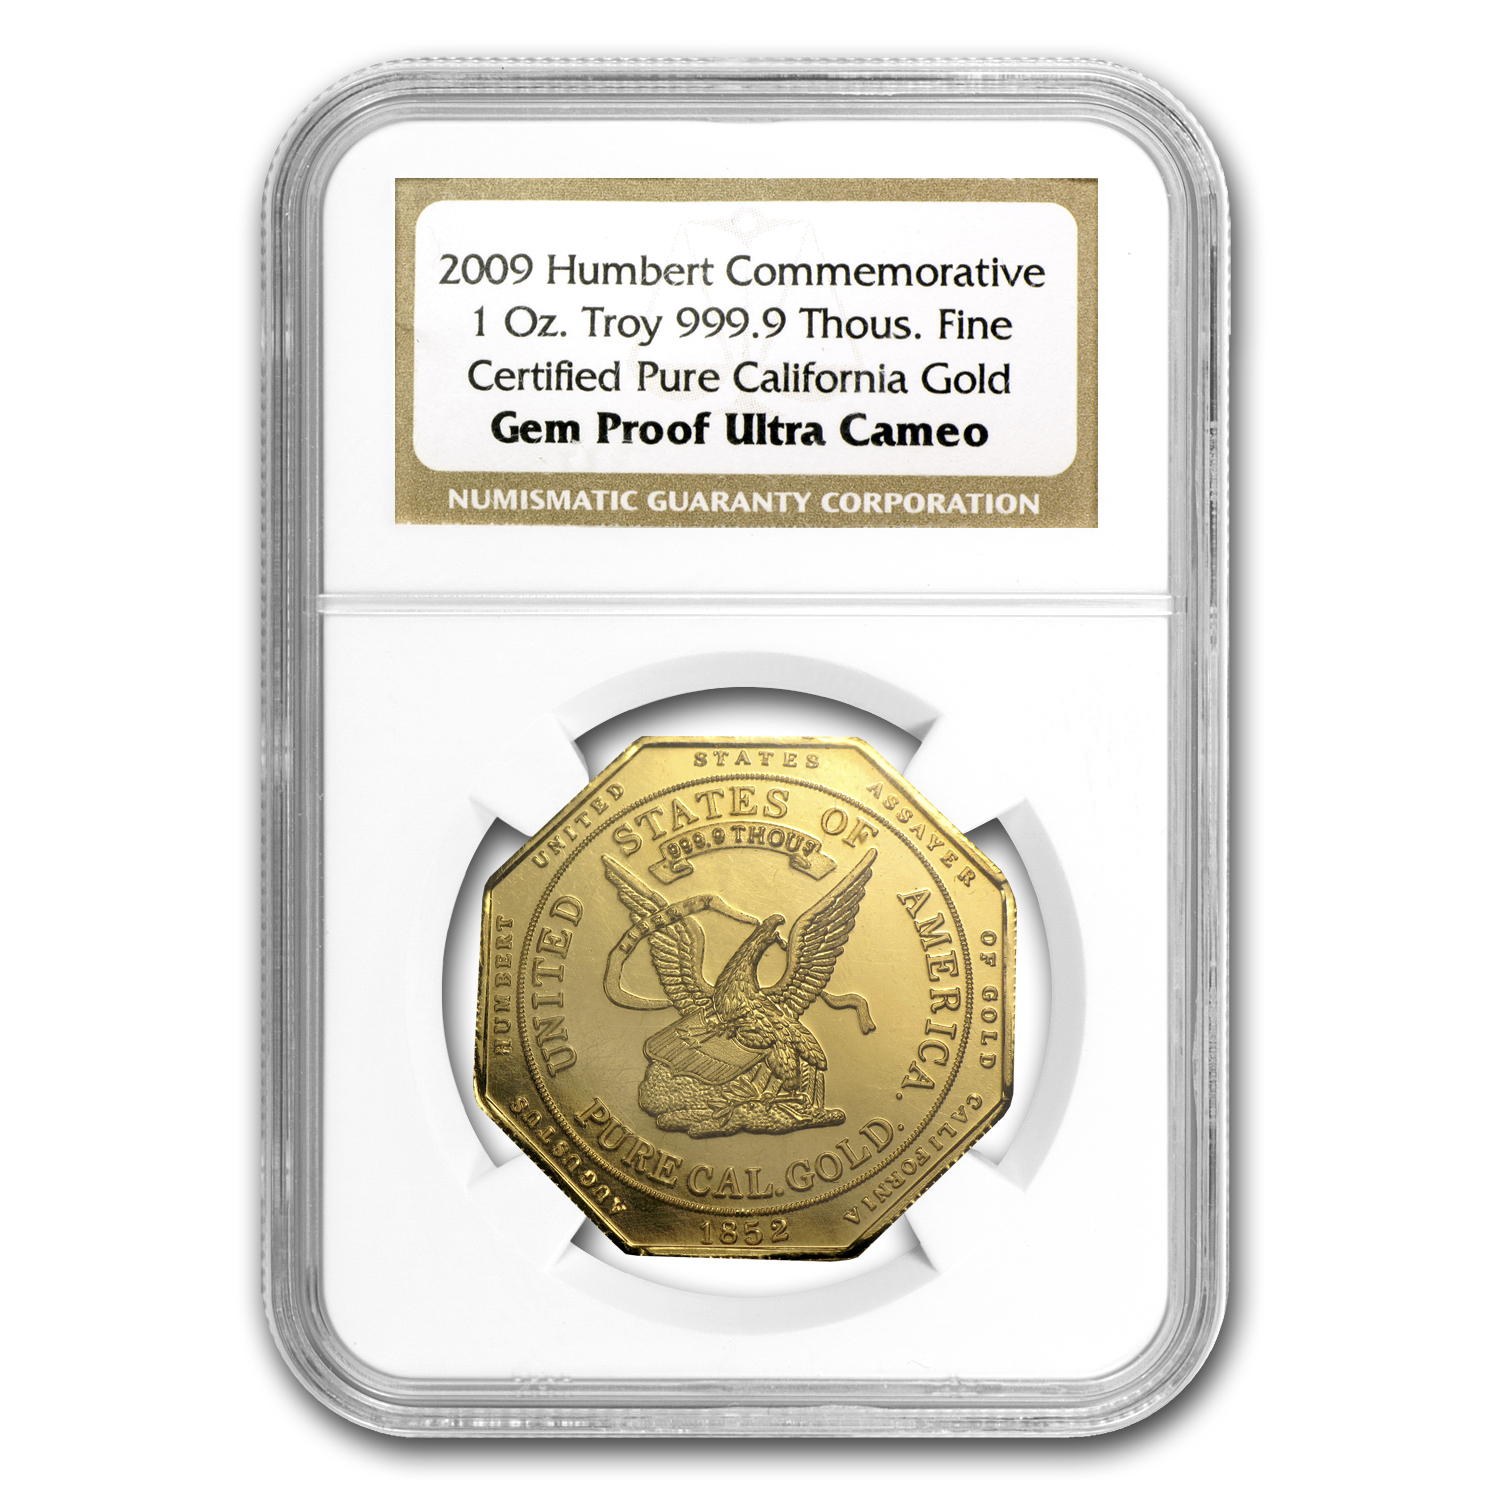 1 oz Gold Round - 2009 Humbert Commemorative Gold (Ultra Cameo)